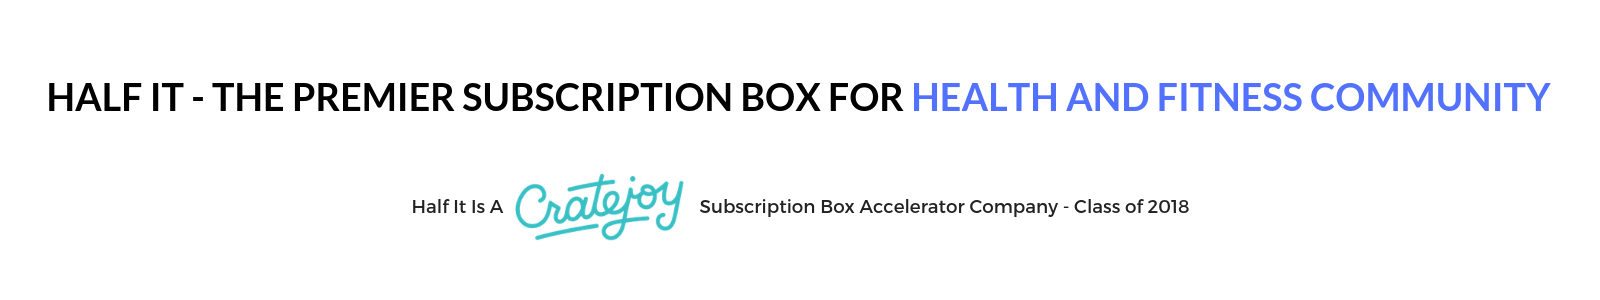 half it the premier subscription box for health and fitness community